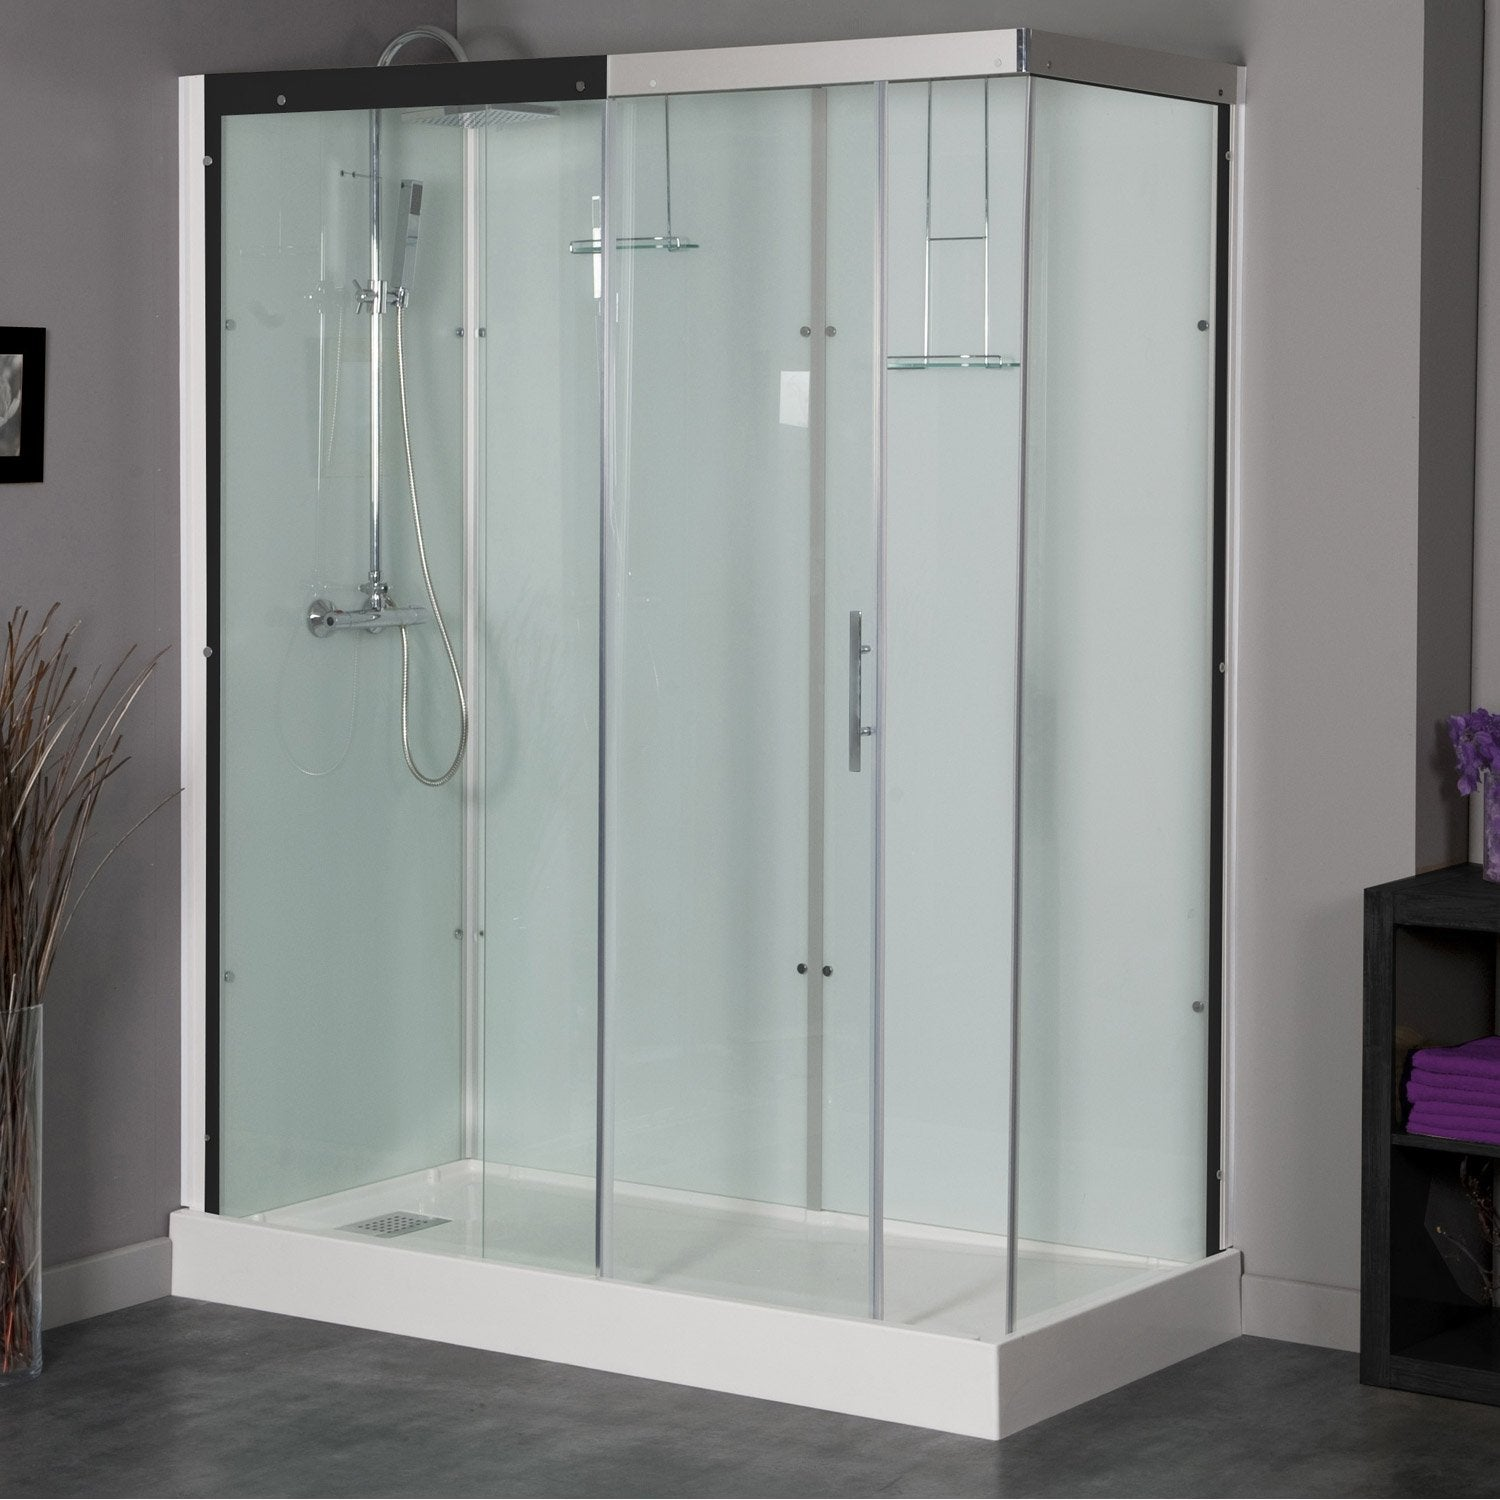 Cabine de douche rectangulaire 180x80 cm, Thalaglass 2 thermo ...